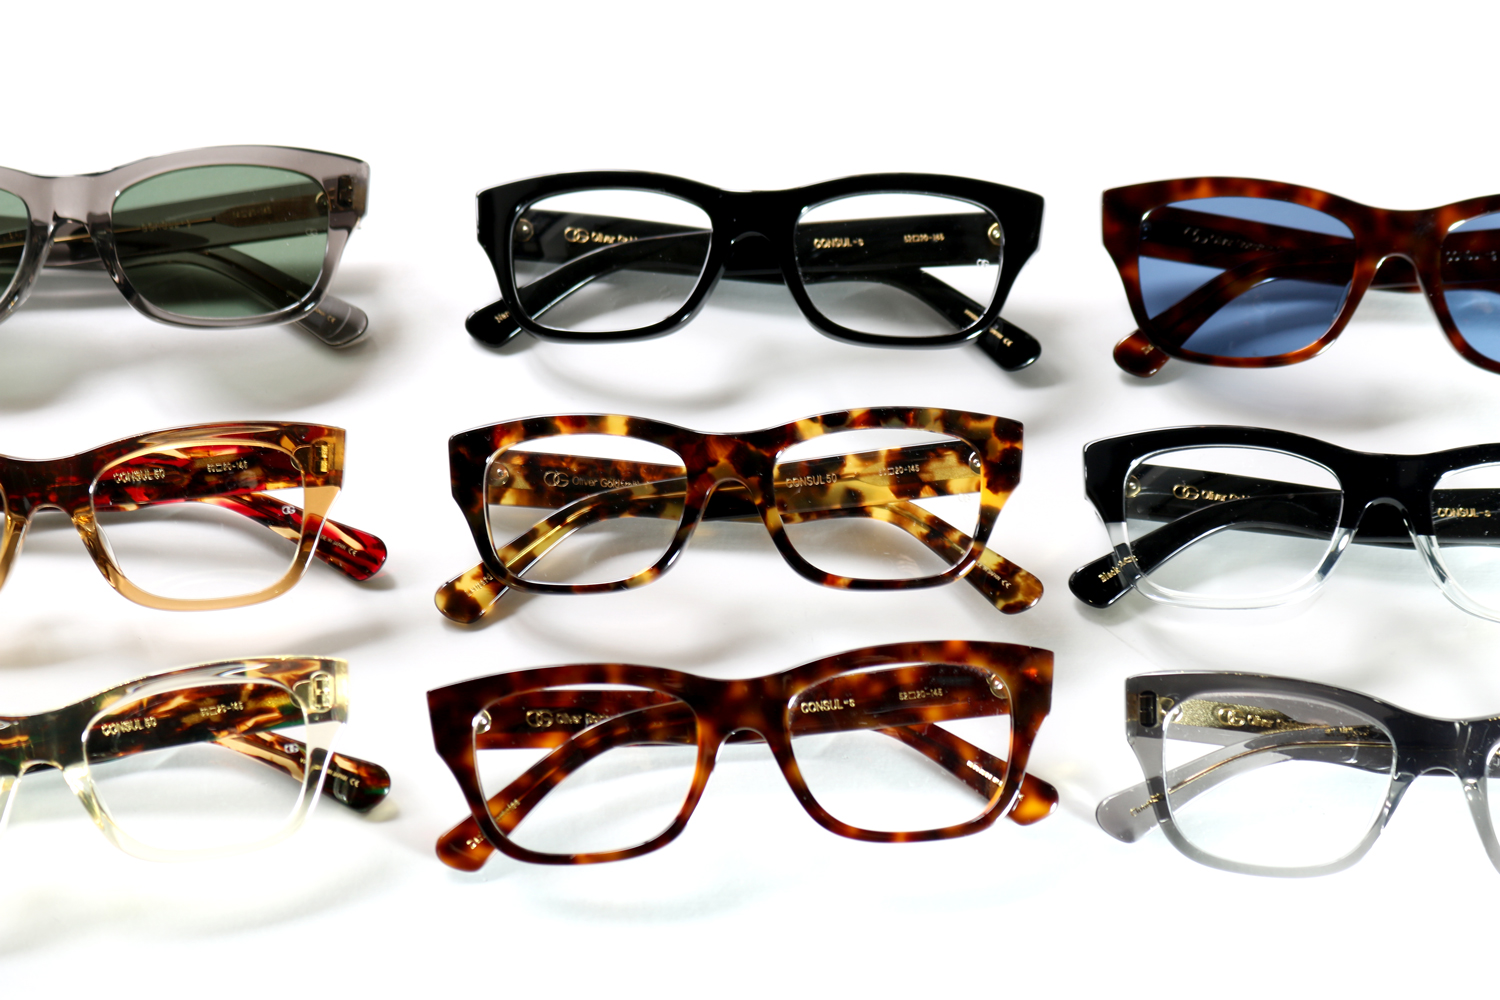 Oliver Goldsmith|About 「CONSUL」